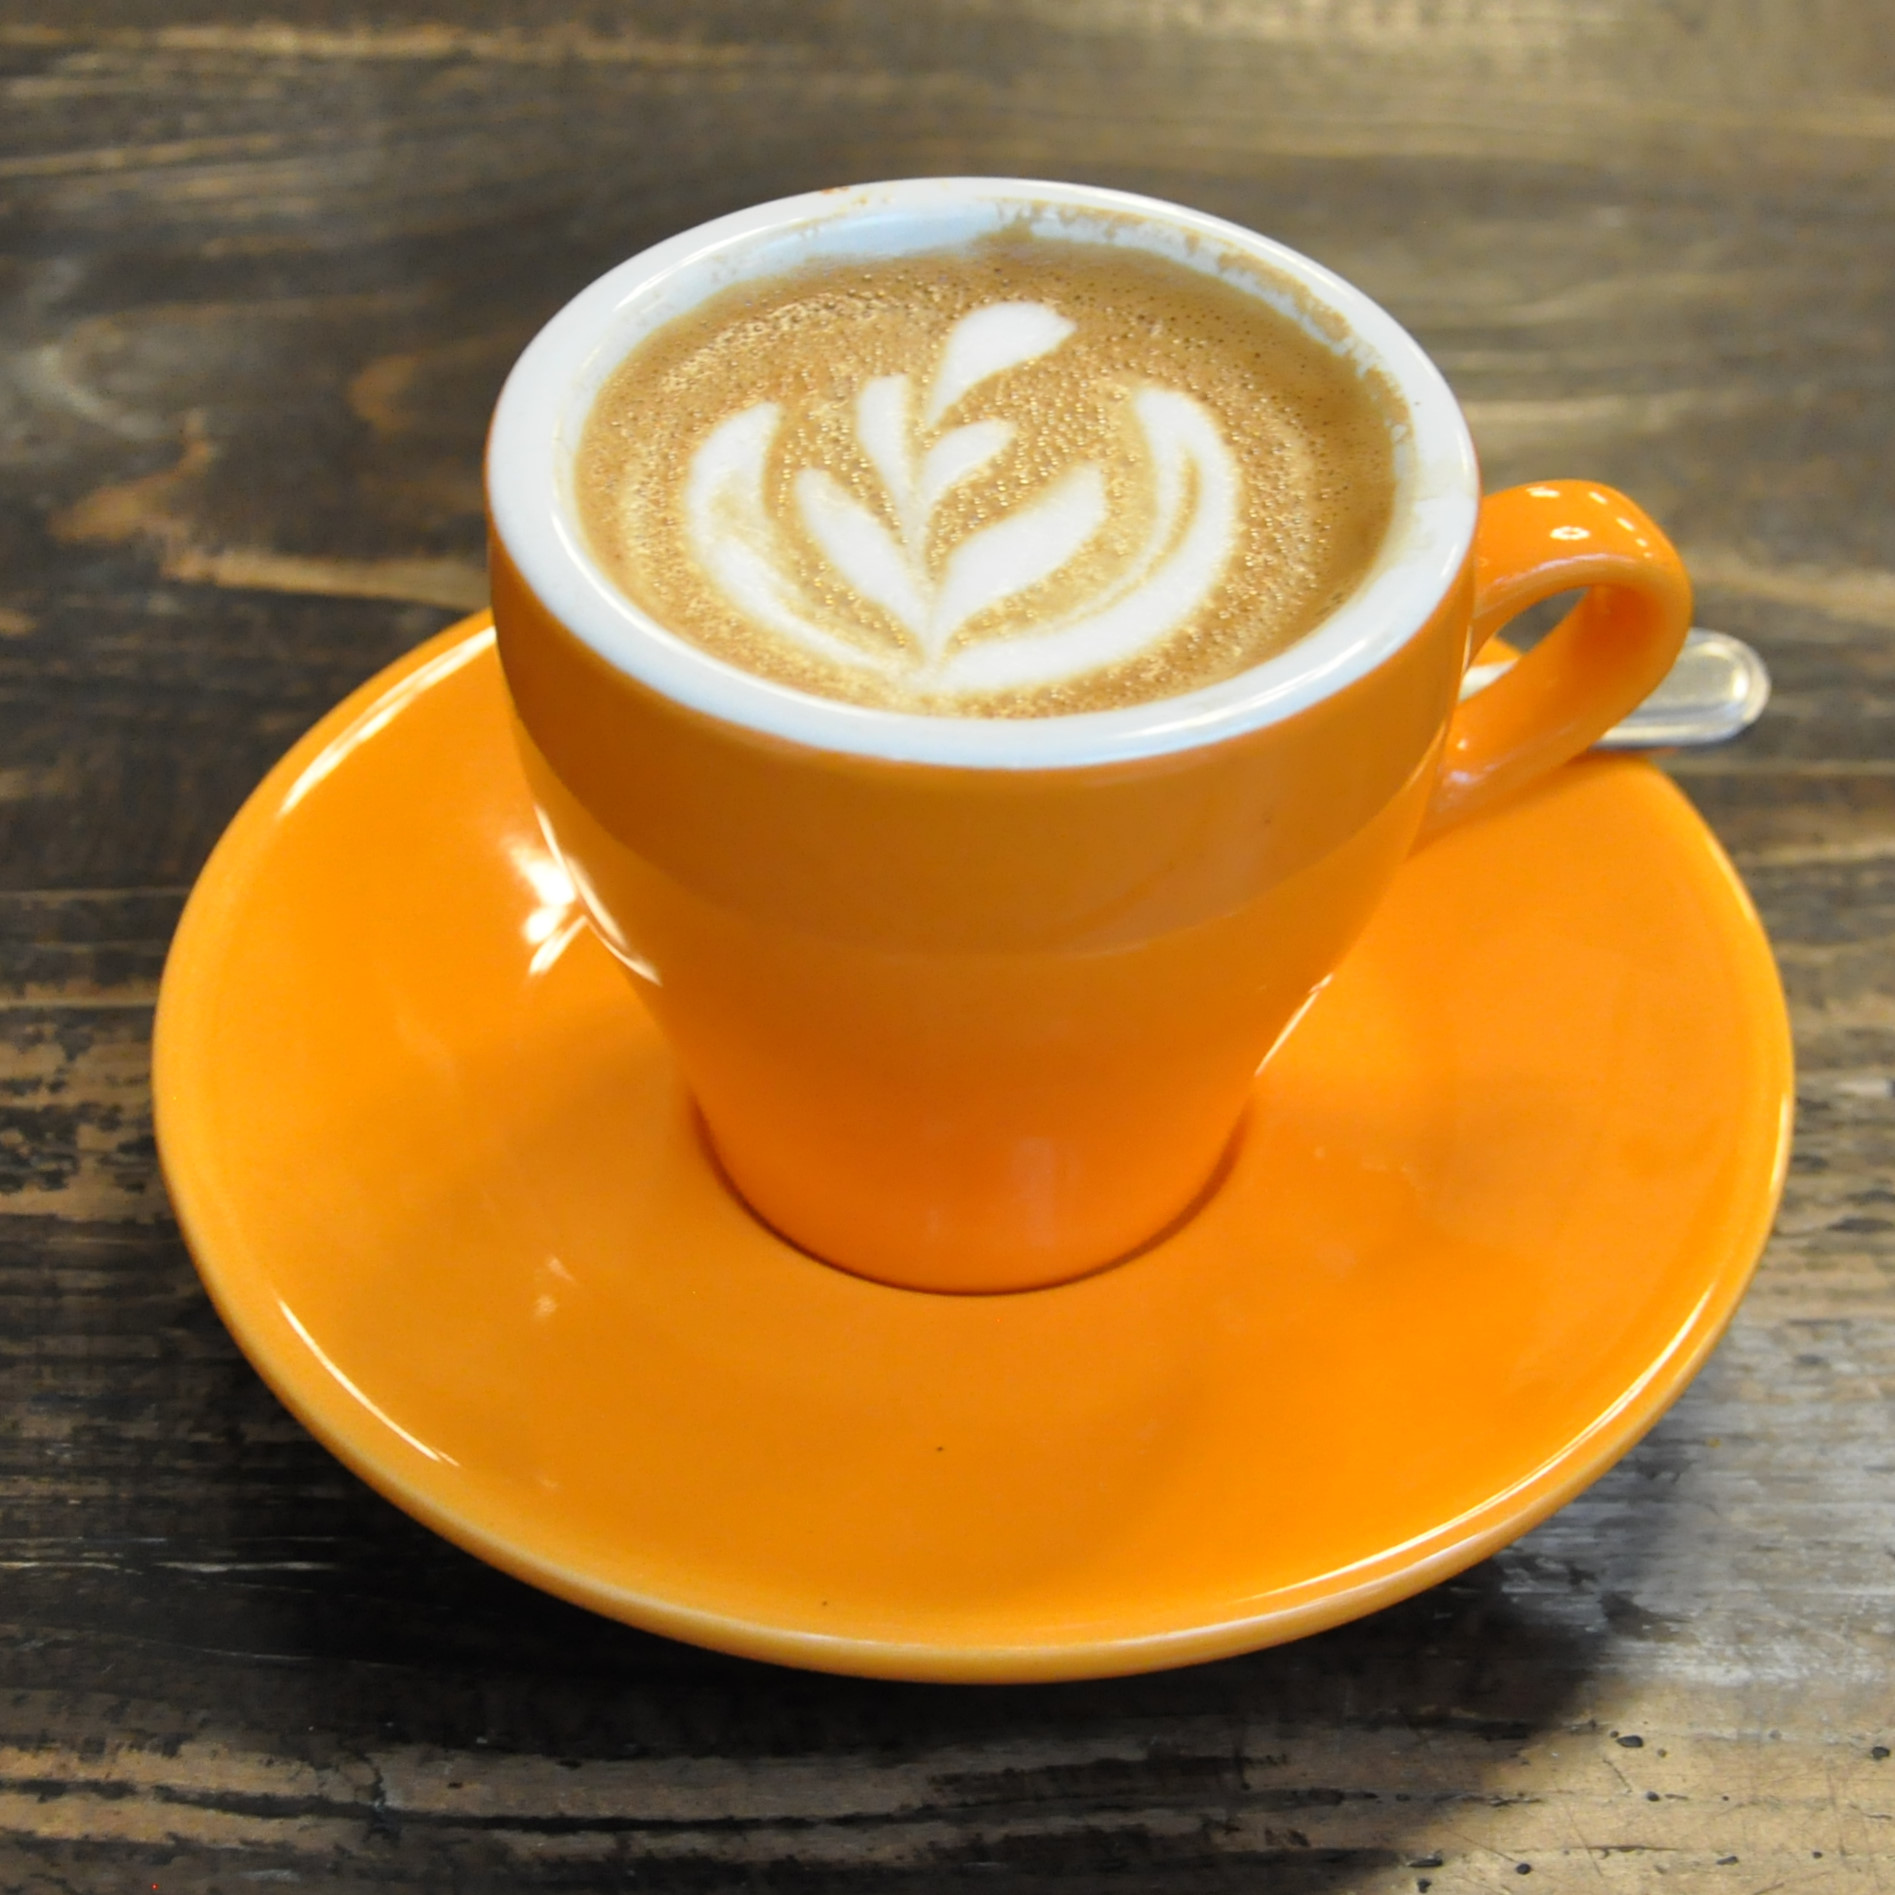 A flat white from Café Grumpy, in an orange, six-ounce tulip cup.